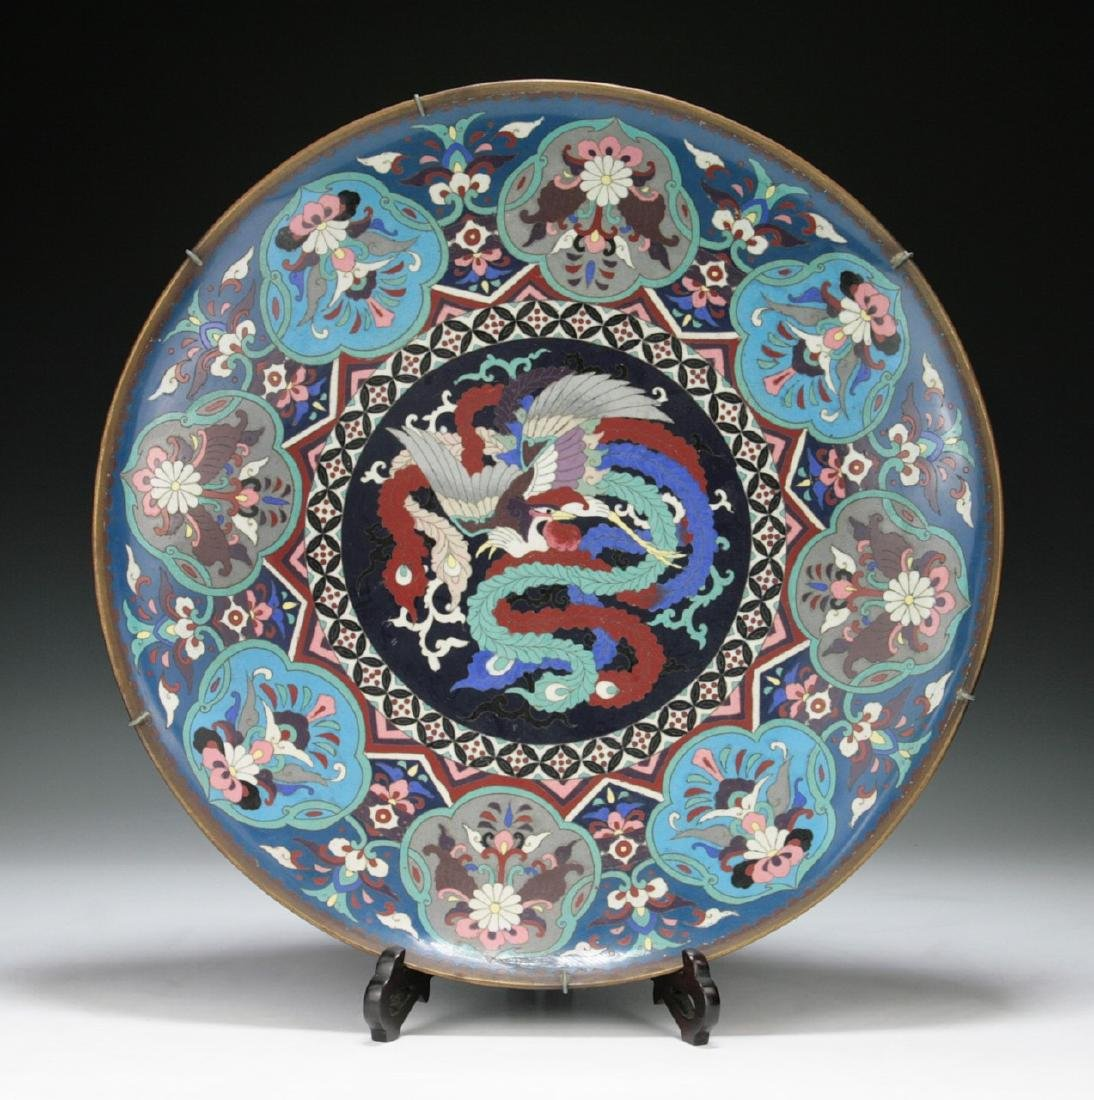 A FINE & BIG JAPANESE SILVER ANDO CLOISONNE PLATE